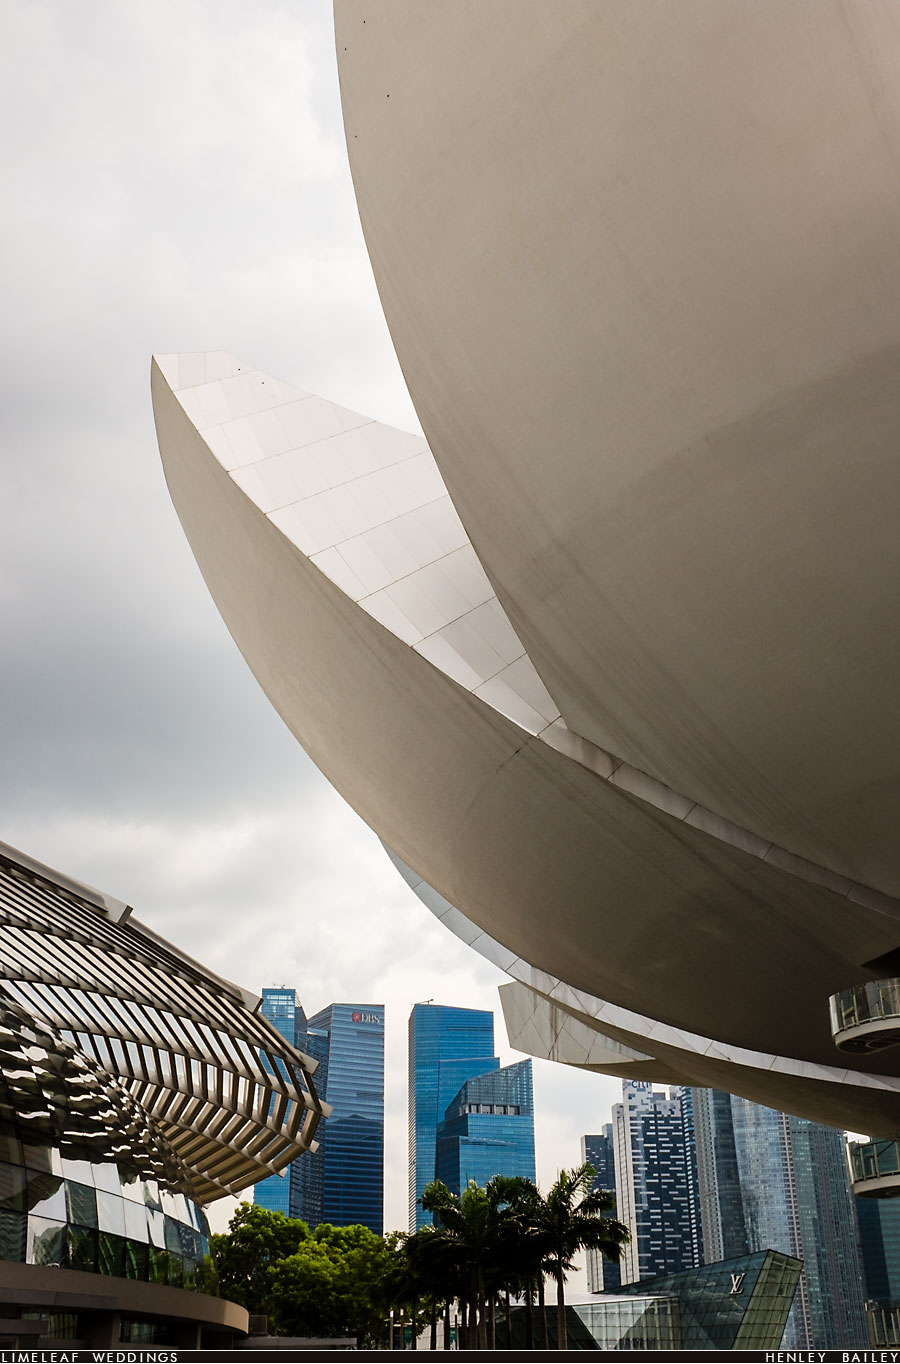 Singapores financial centre is seen behind the Art Science museum of Marina Bay Sands